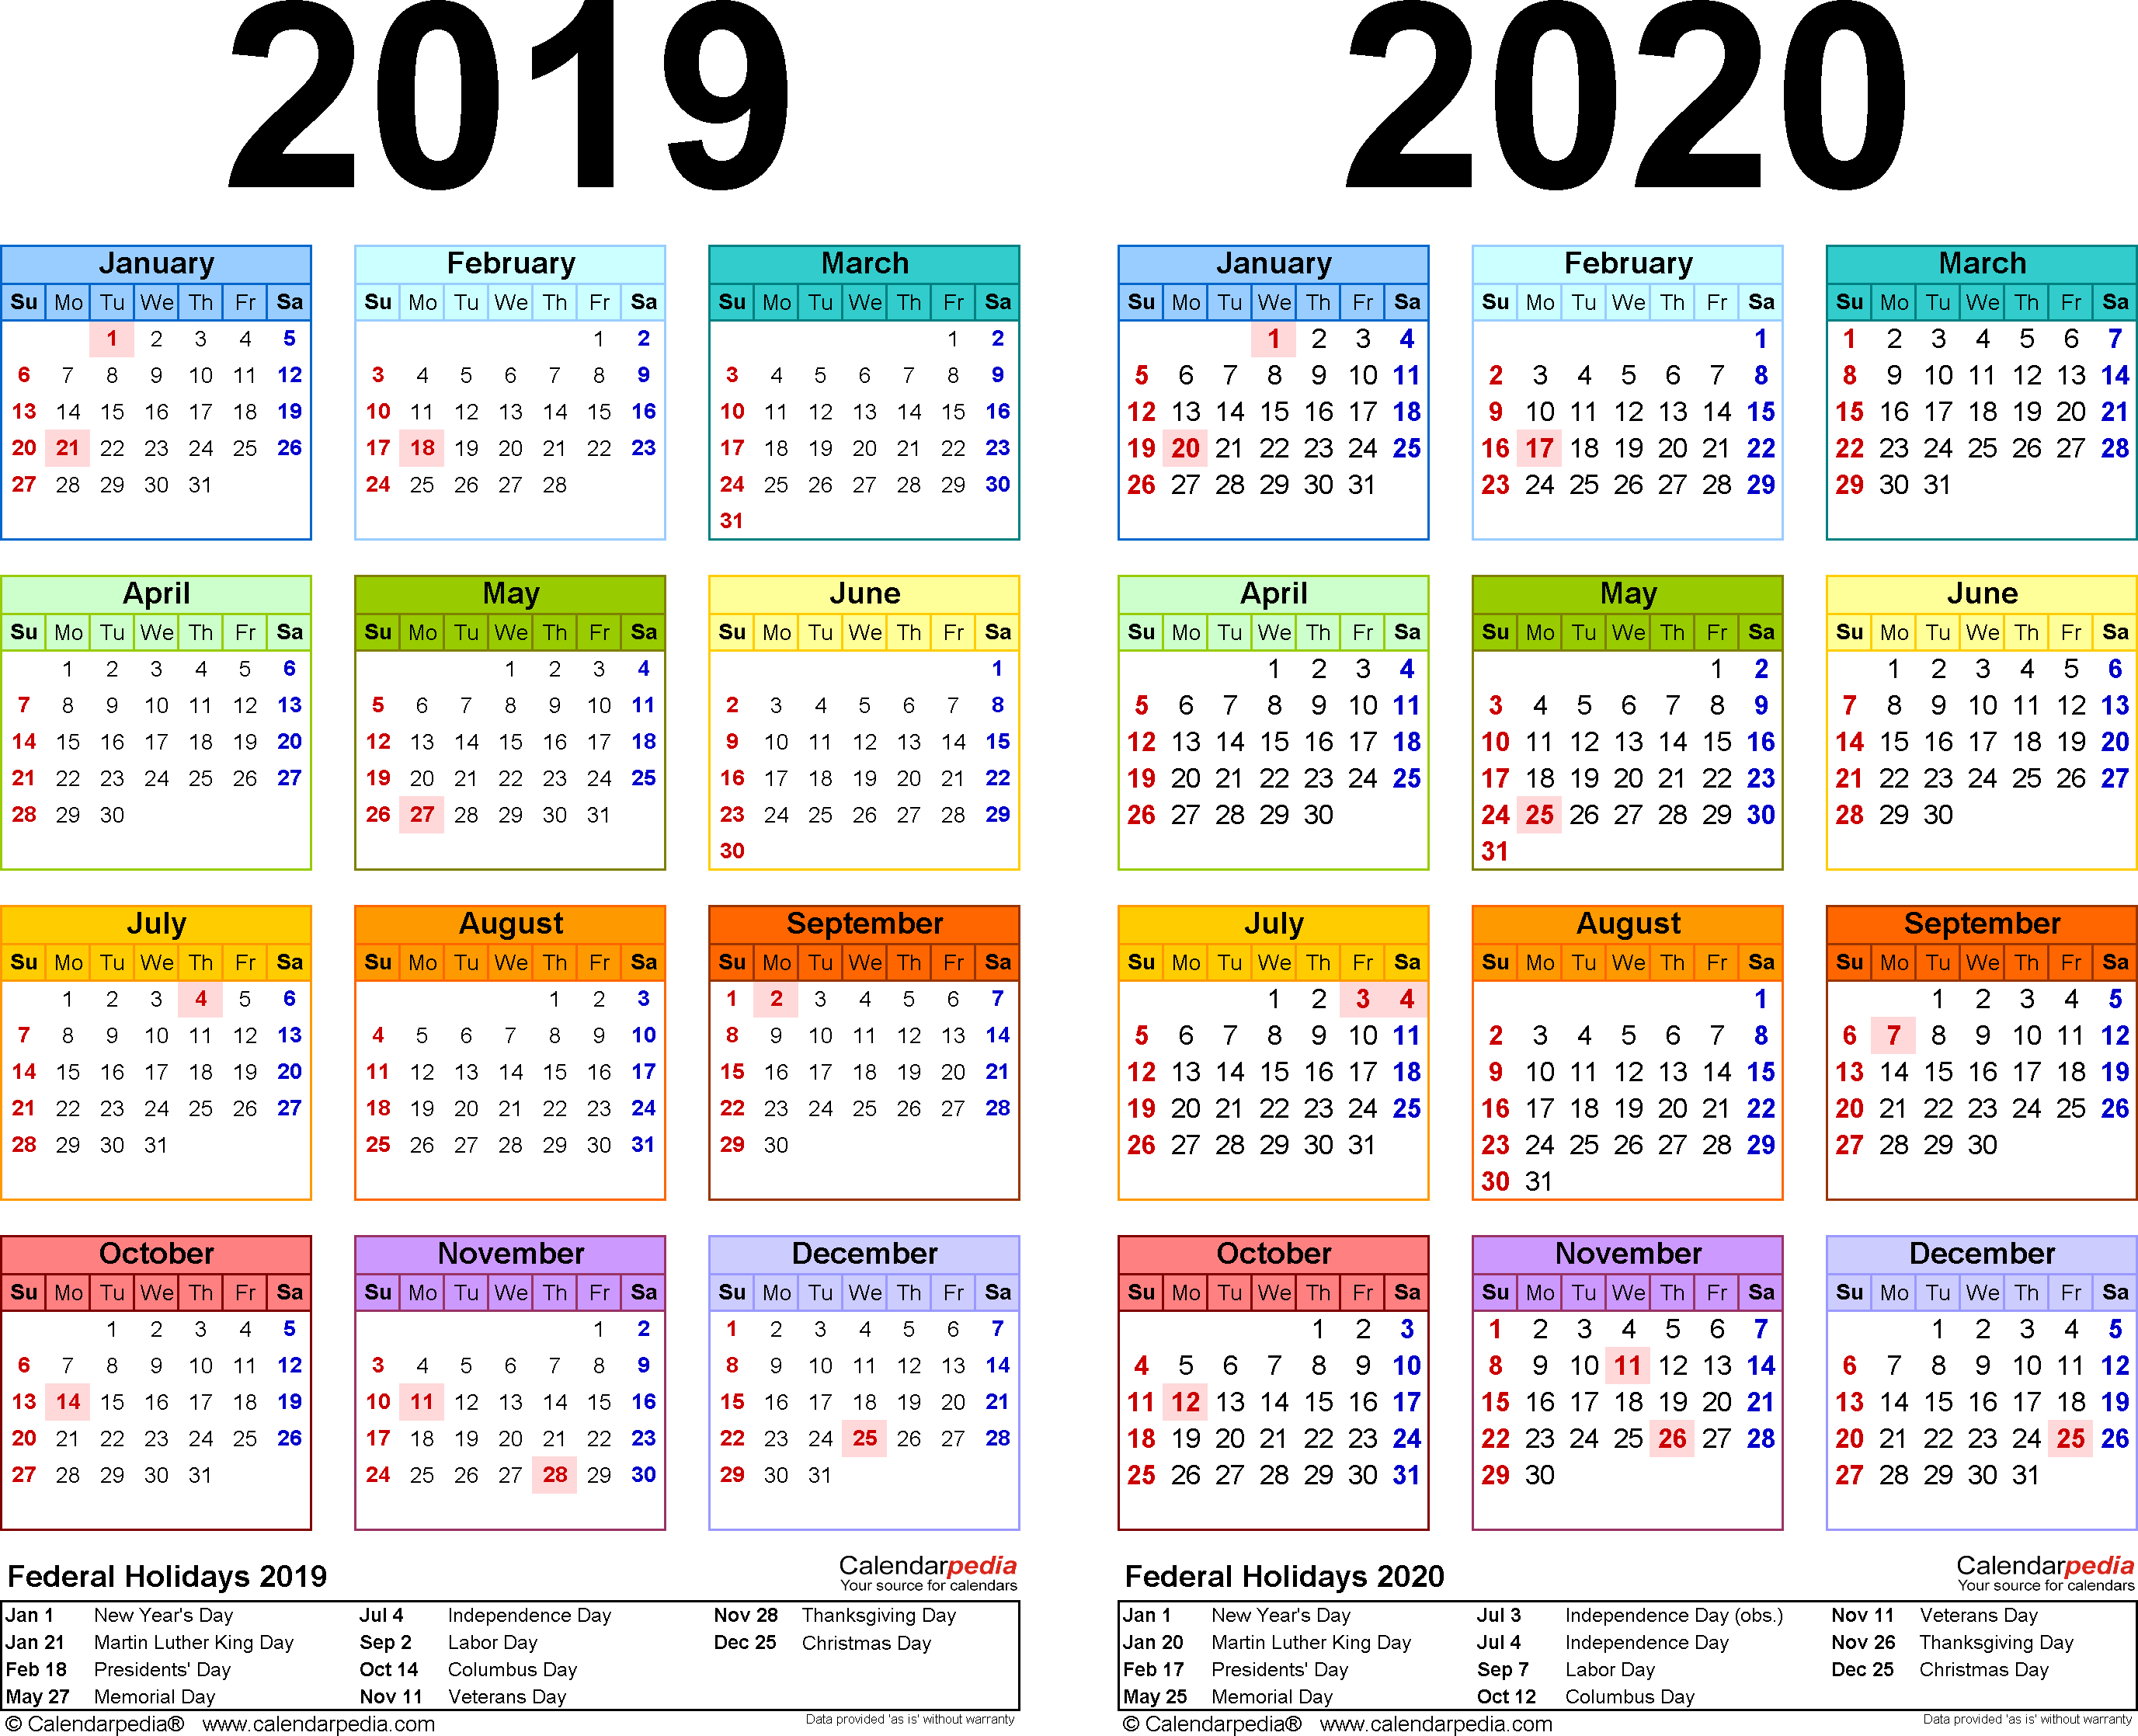 2019-2020 Calendar - Free Printable Two-Year Word Calendars for Calendar To Type On 2019 - 2020